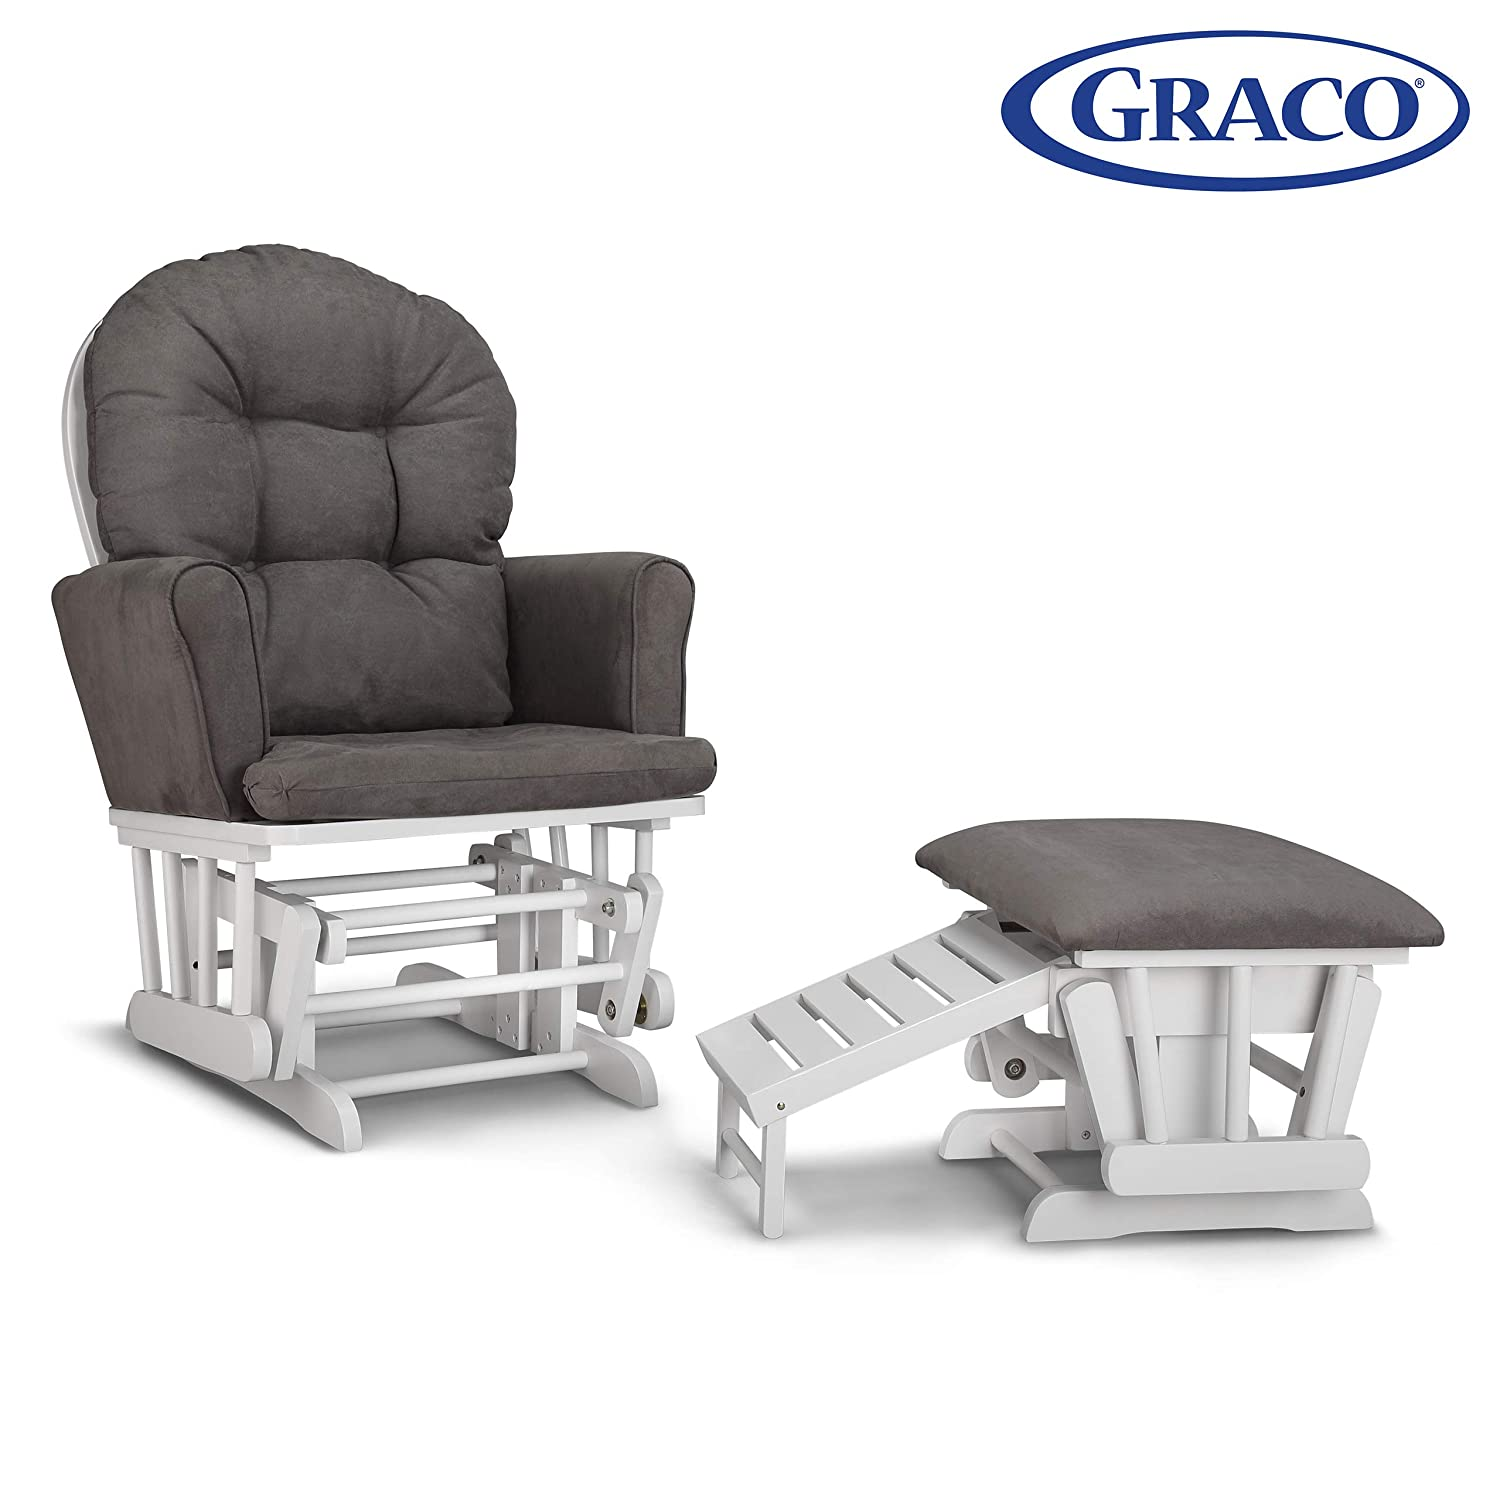 Graco Parker Semi-Upholstered Glider and Nursing Ottoman, White Gray Cleanable Upholstered Comfort Rocking Nursery Chair with Ottoman